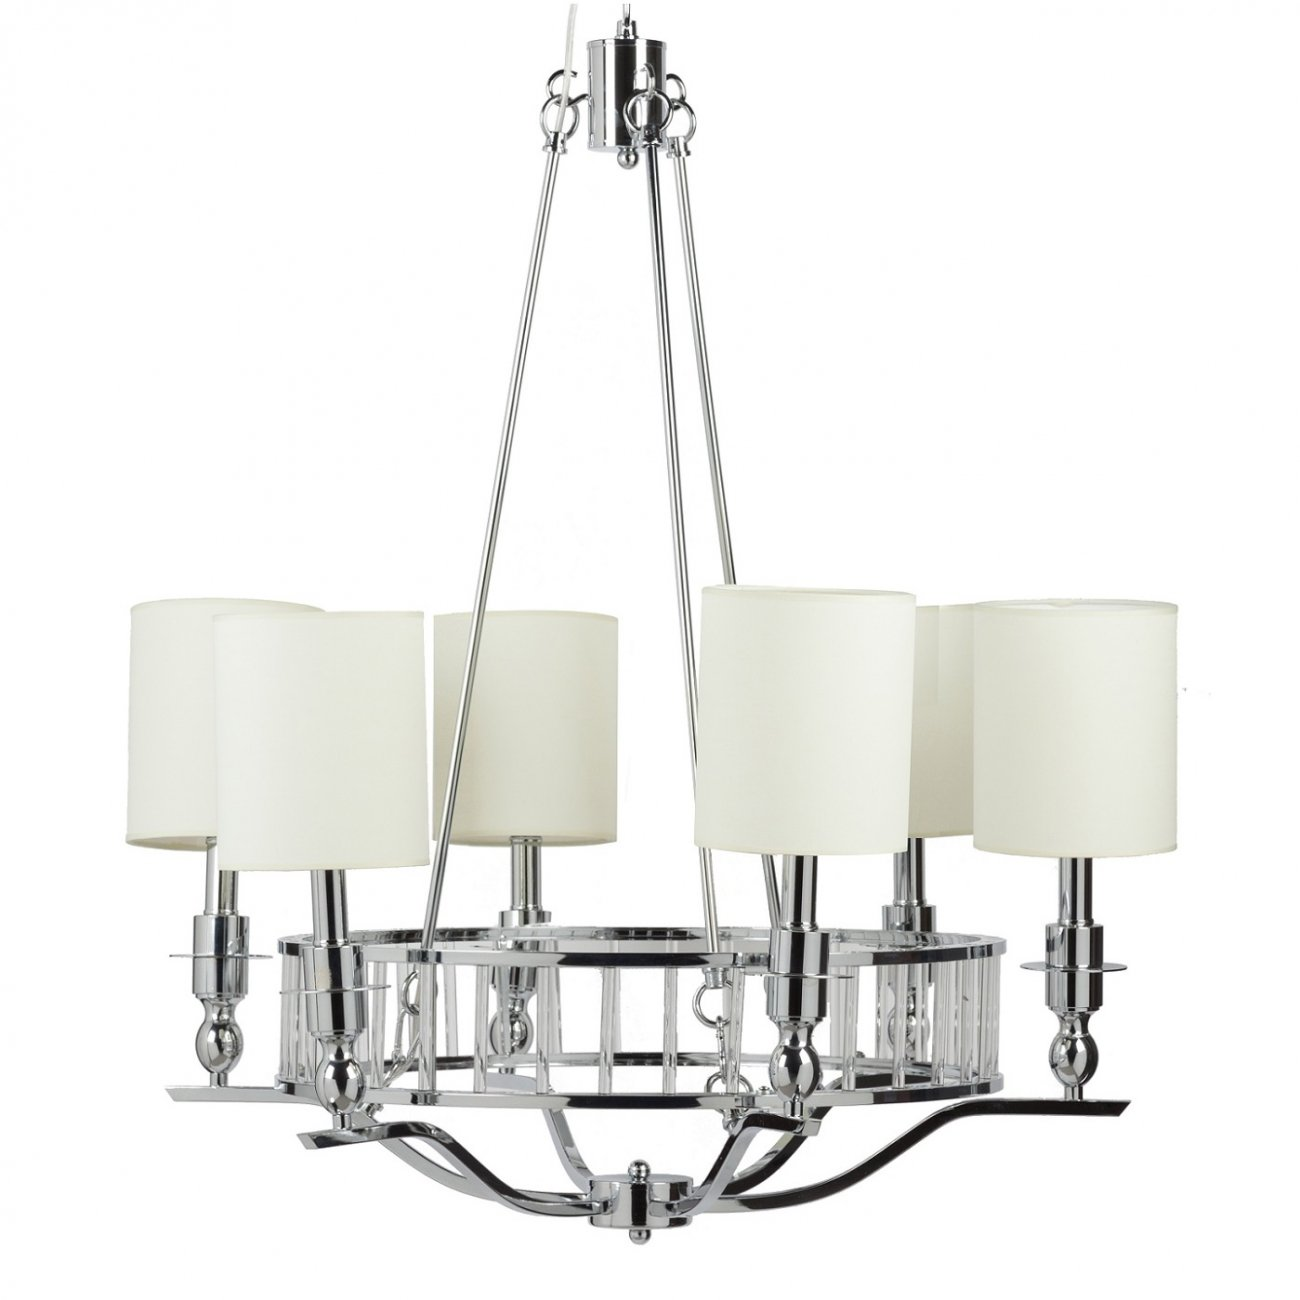 Люстра Easton Light Chandelier